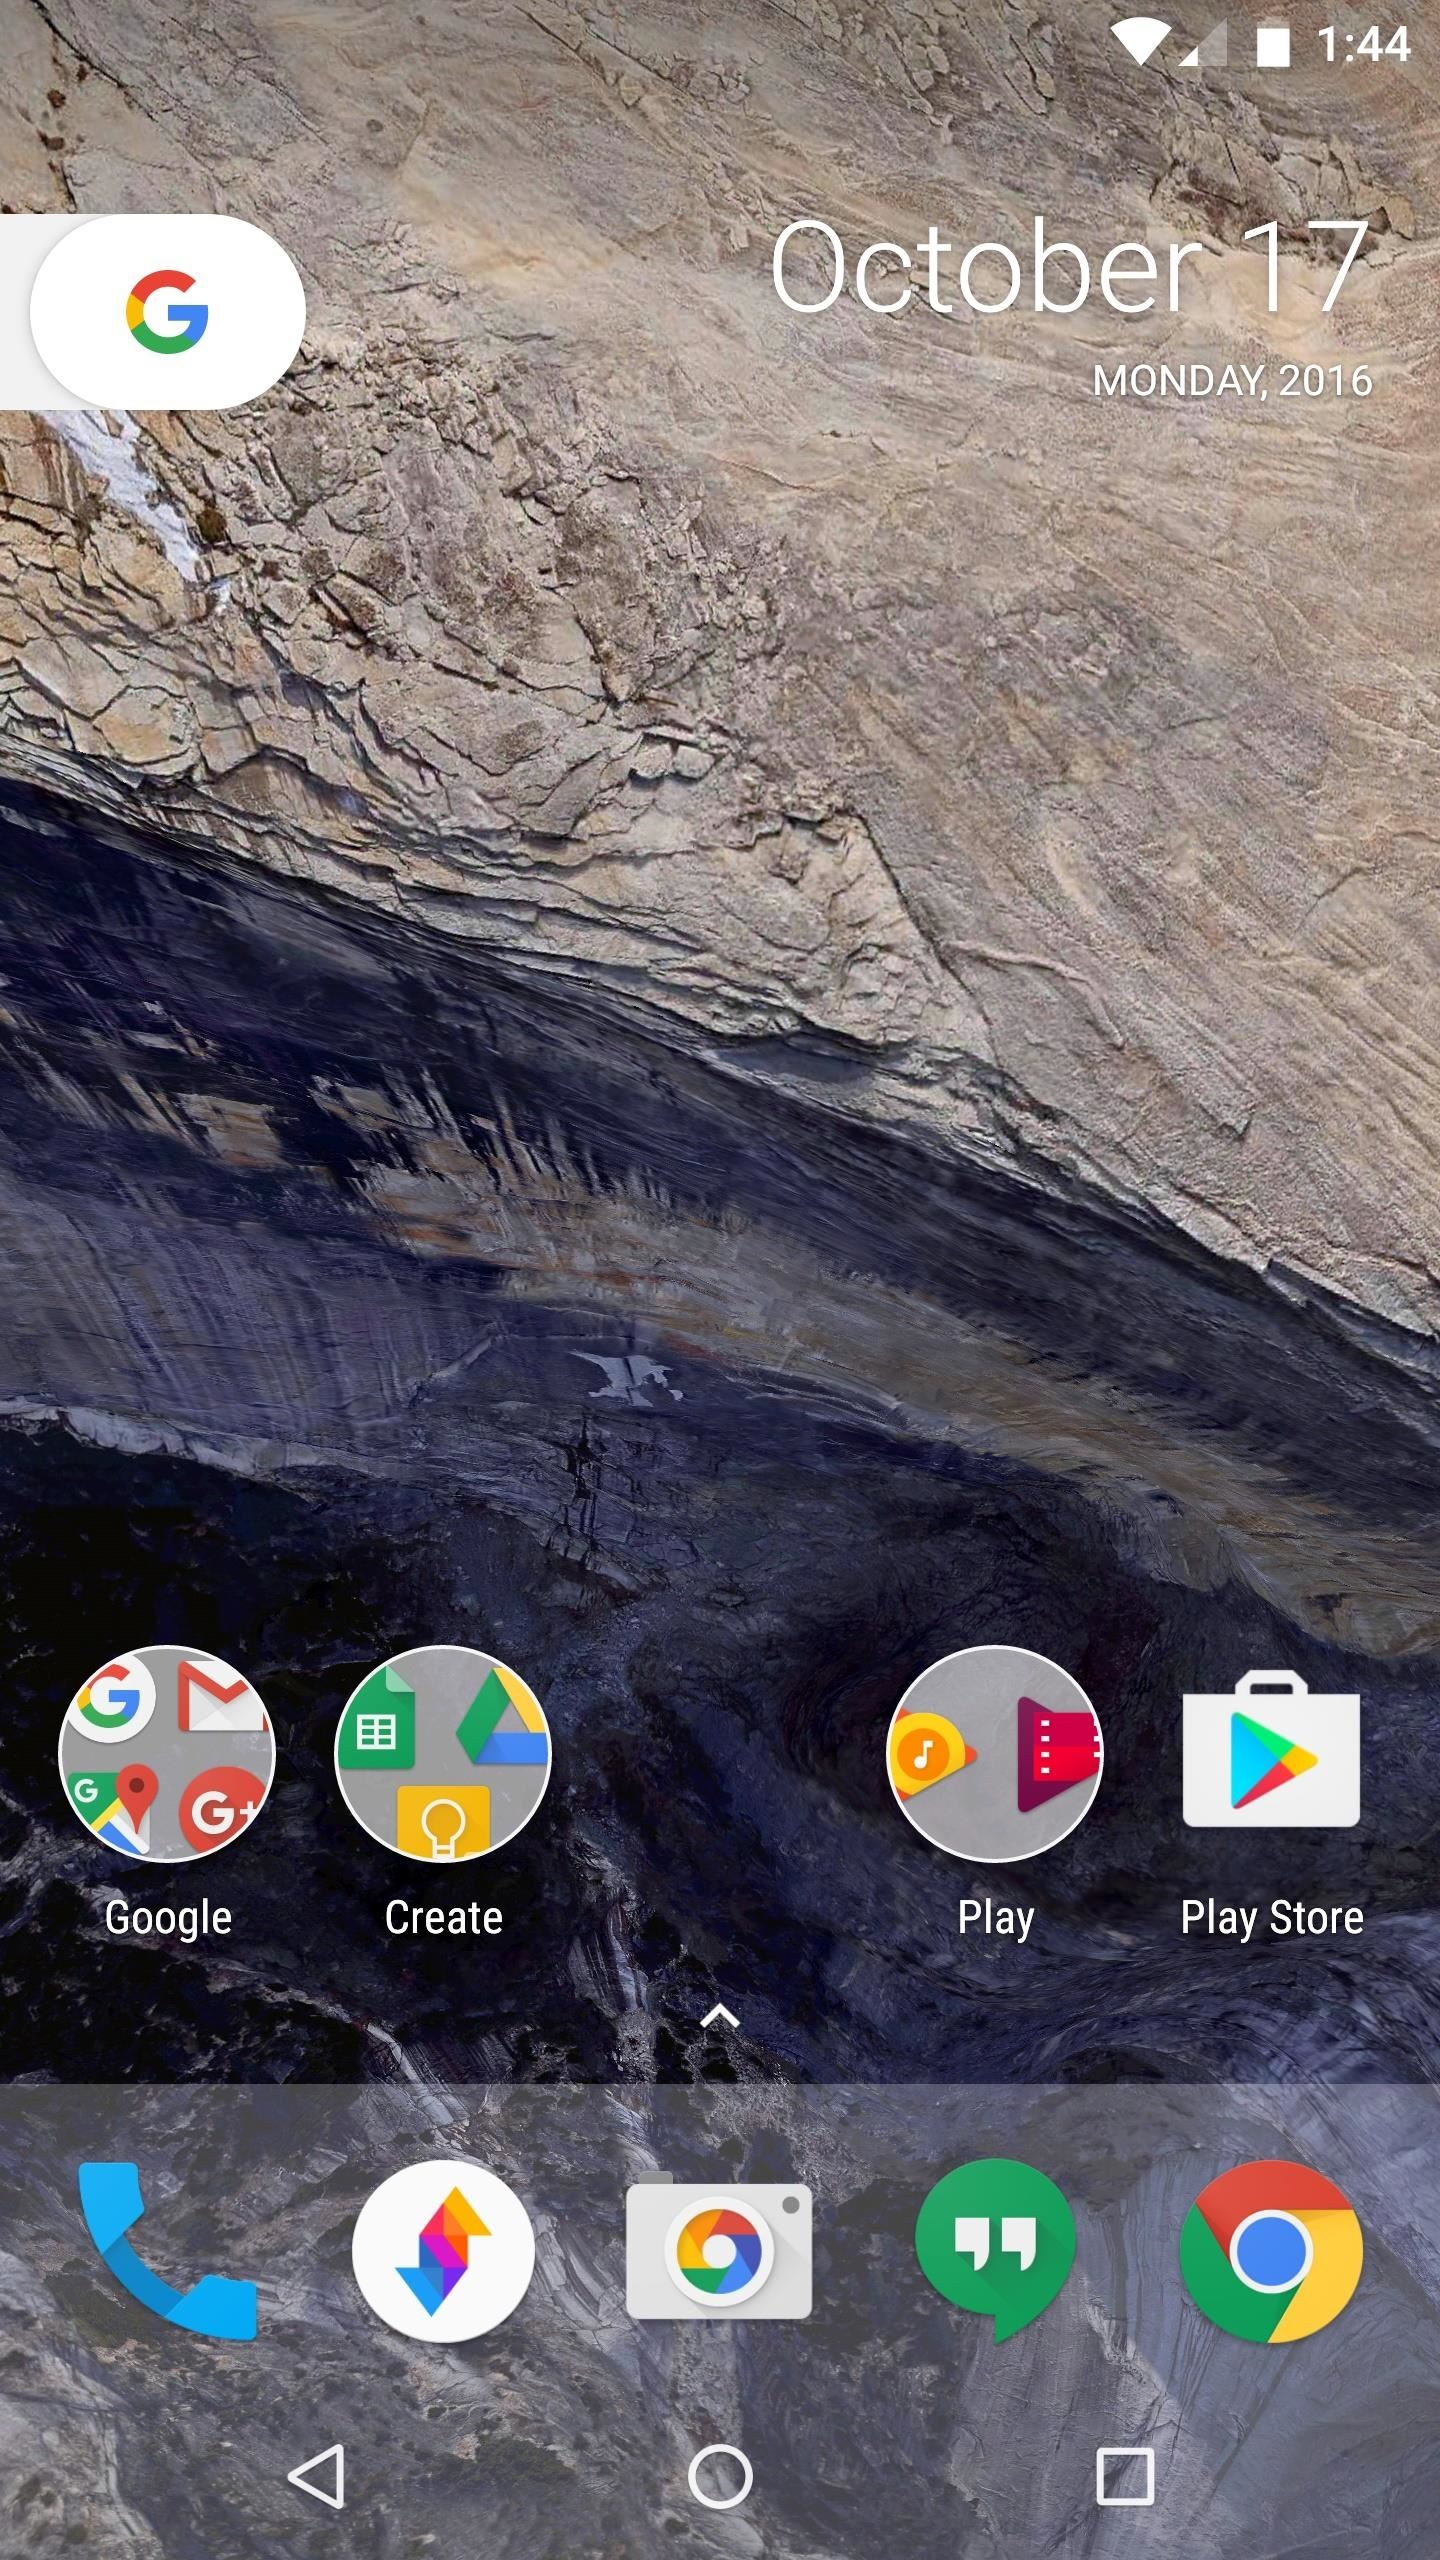 How to Get the Pixel s Amazing New  Live Earth  Wallpapers on Your     How to Get the Pixel s Amazing New  Live Earth  Wallpapers on Your Android  Device      Android    Gadget Hacks